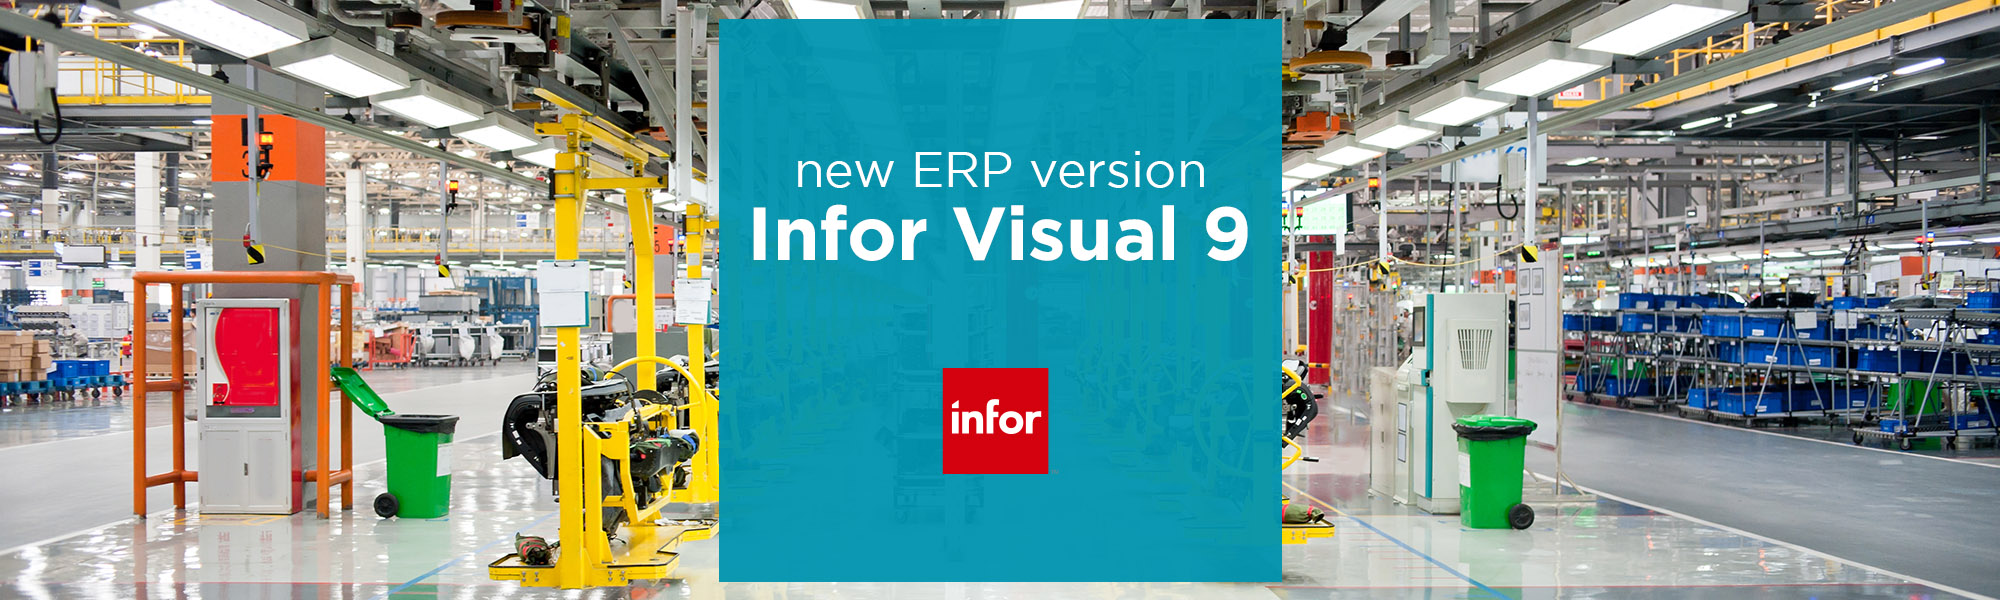 Infor Visual 9